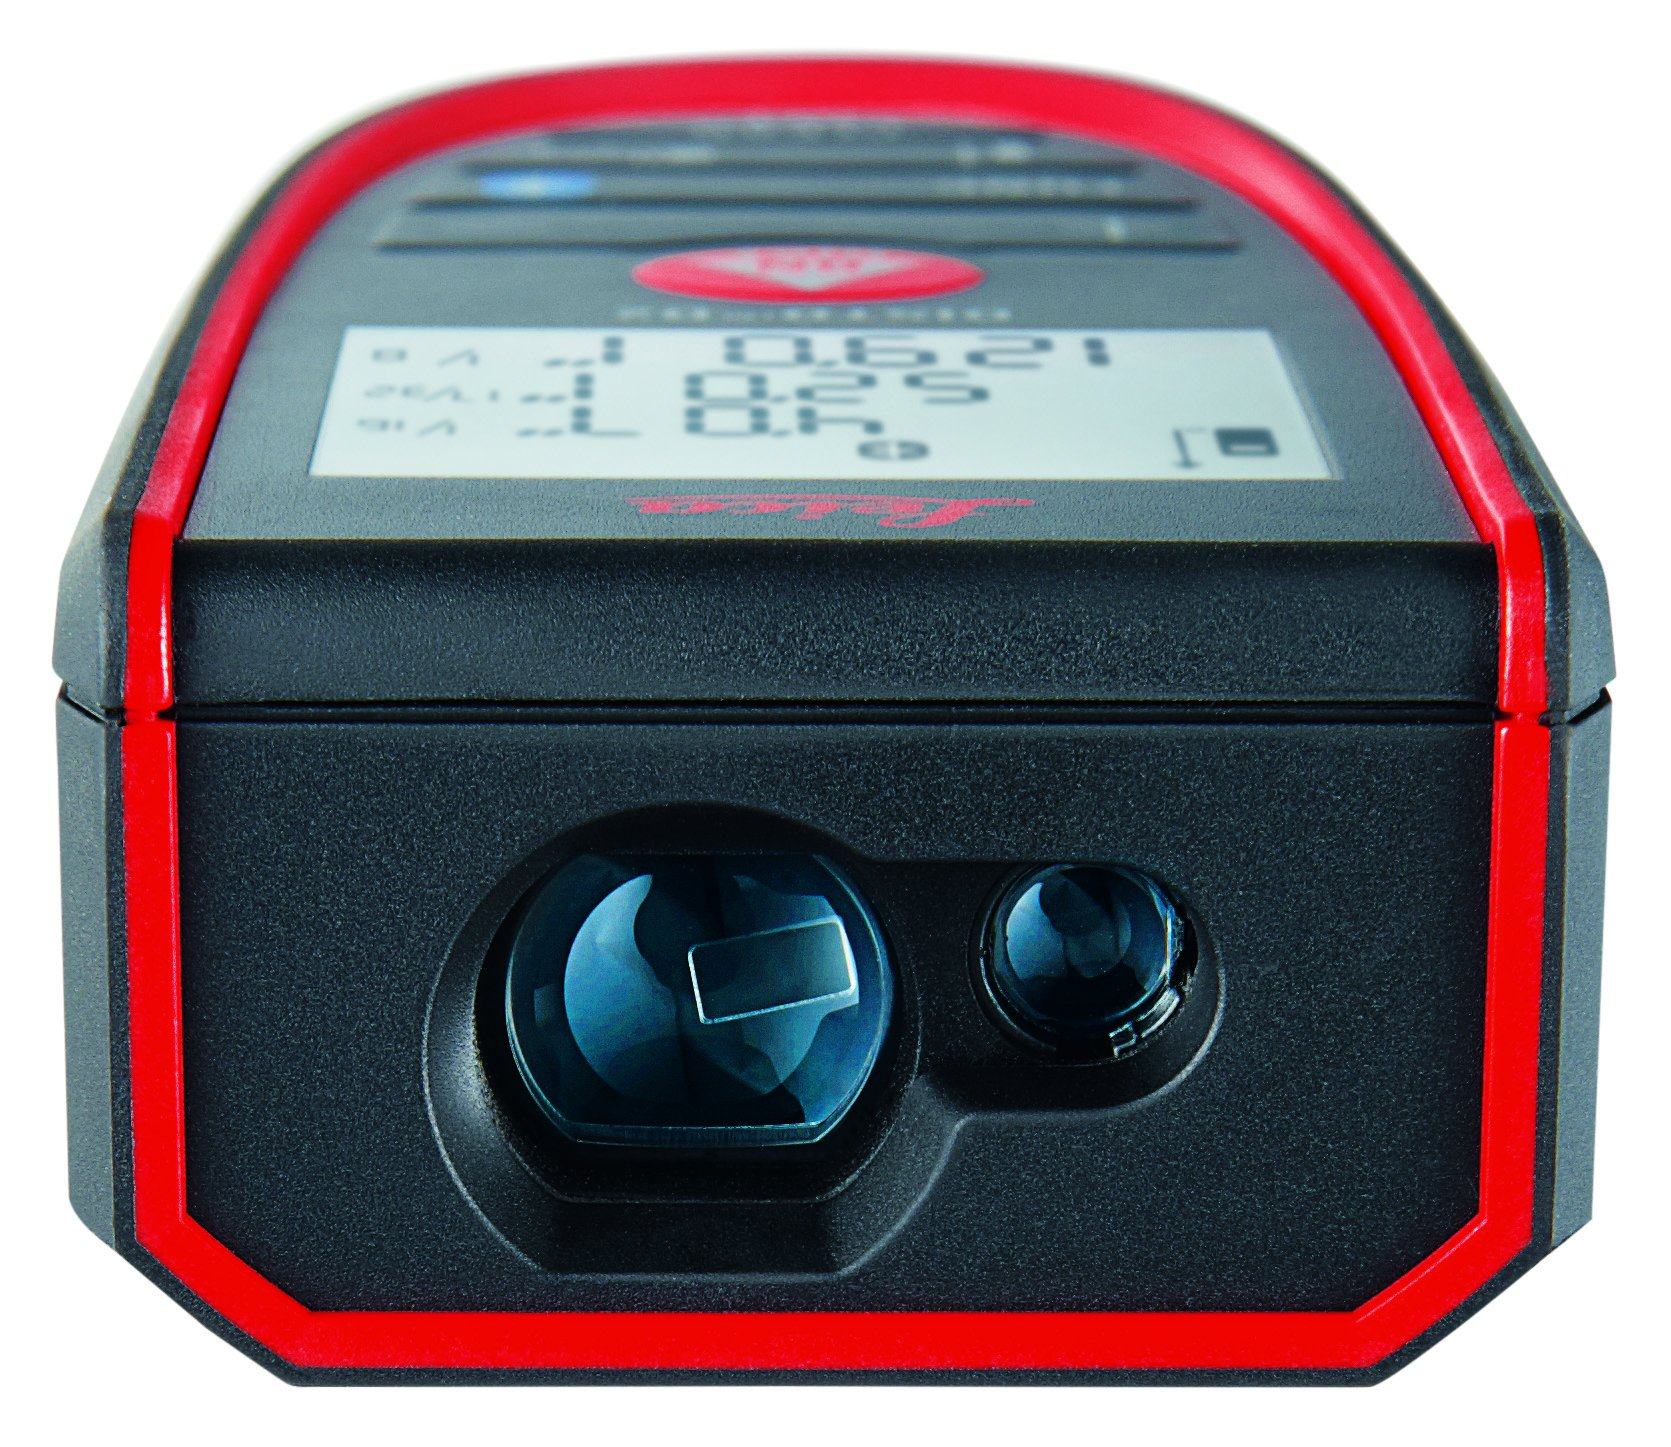 Leica DISTO D2 New 330ft Laser Distance Measure with Bluetooth 4.0, Black/Red by Leica Geosystems